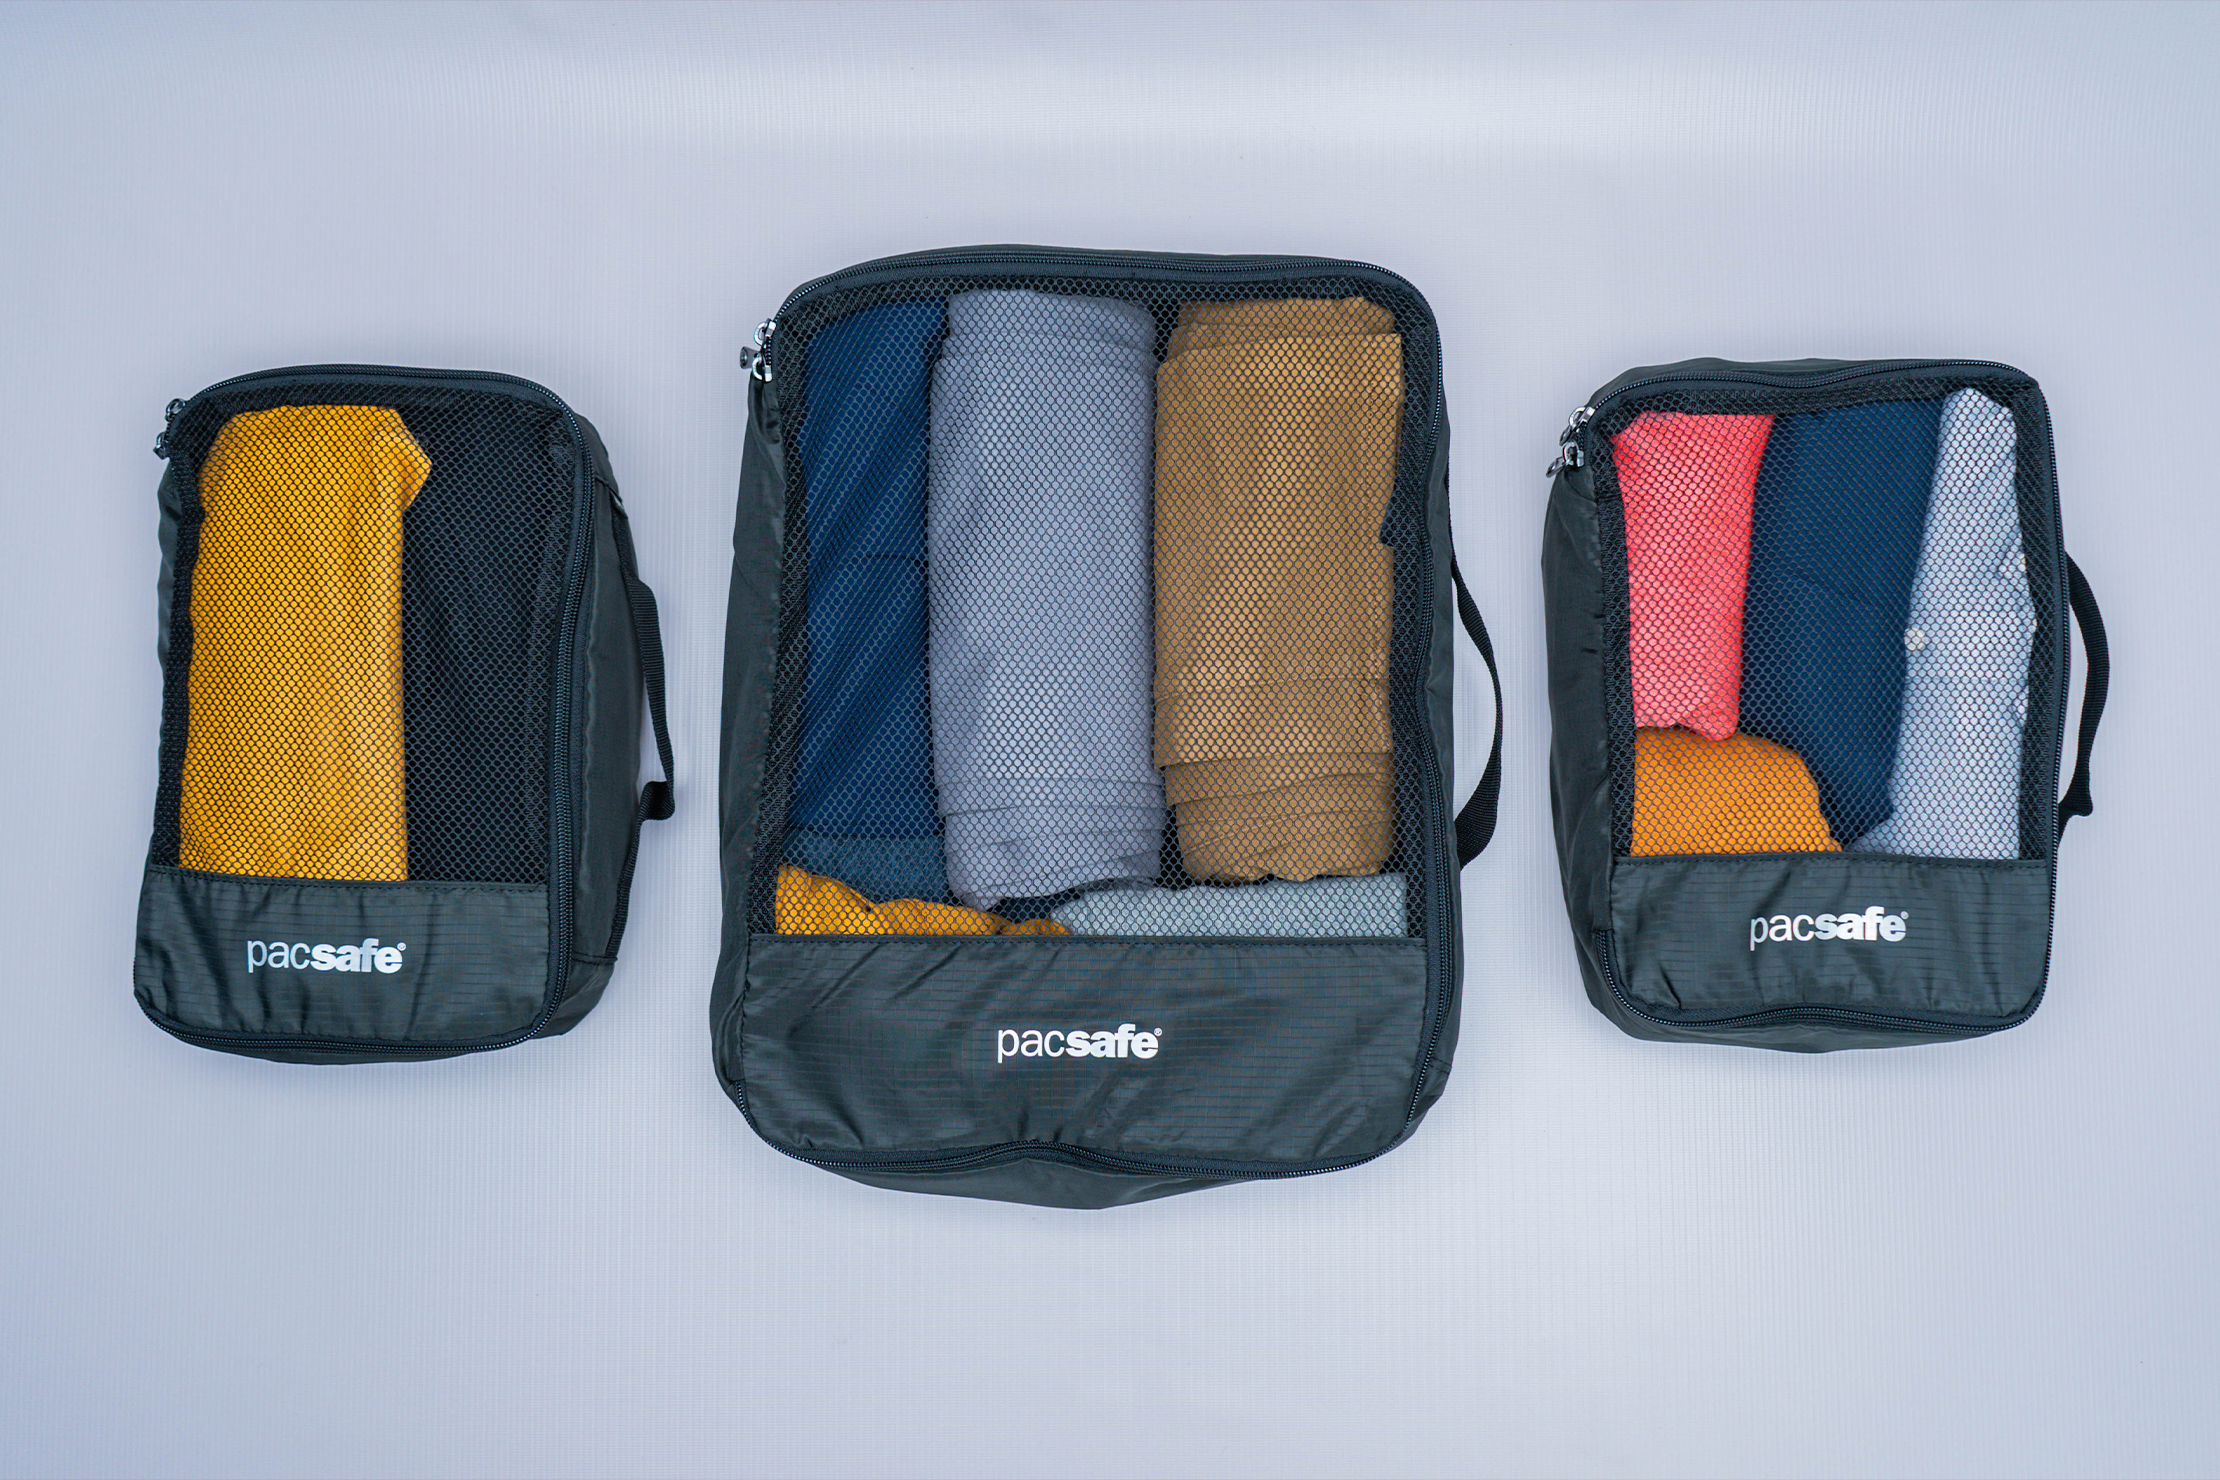 Pacsafe Travel Packing Cubes Three